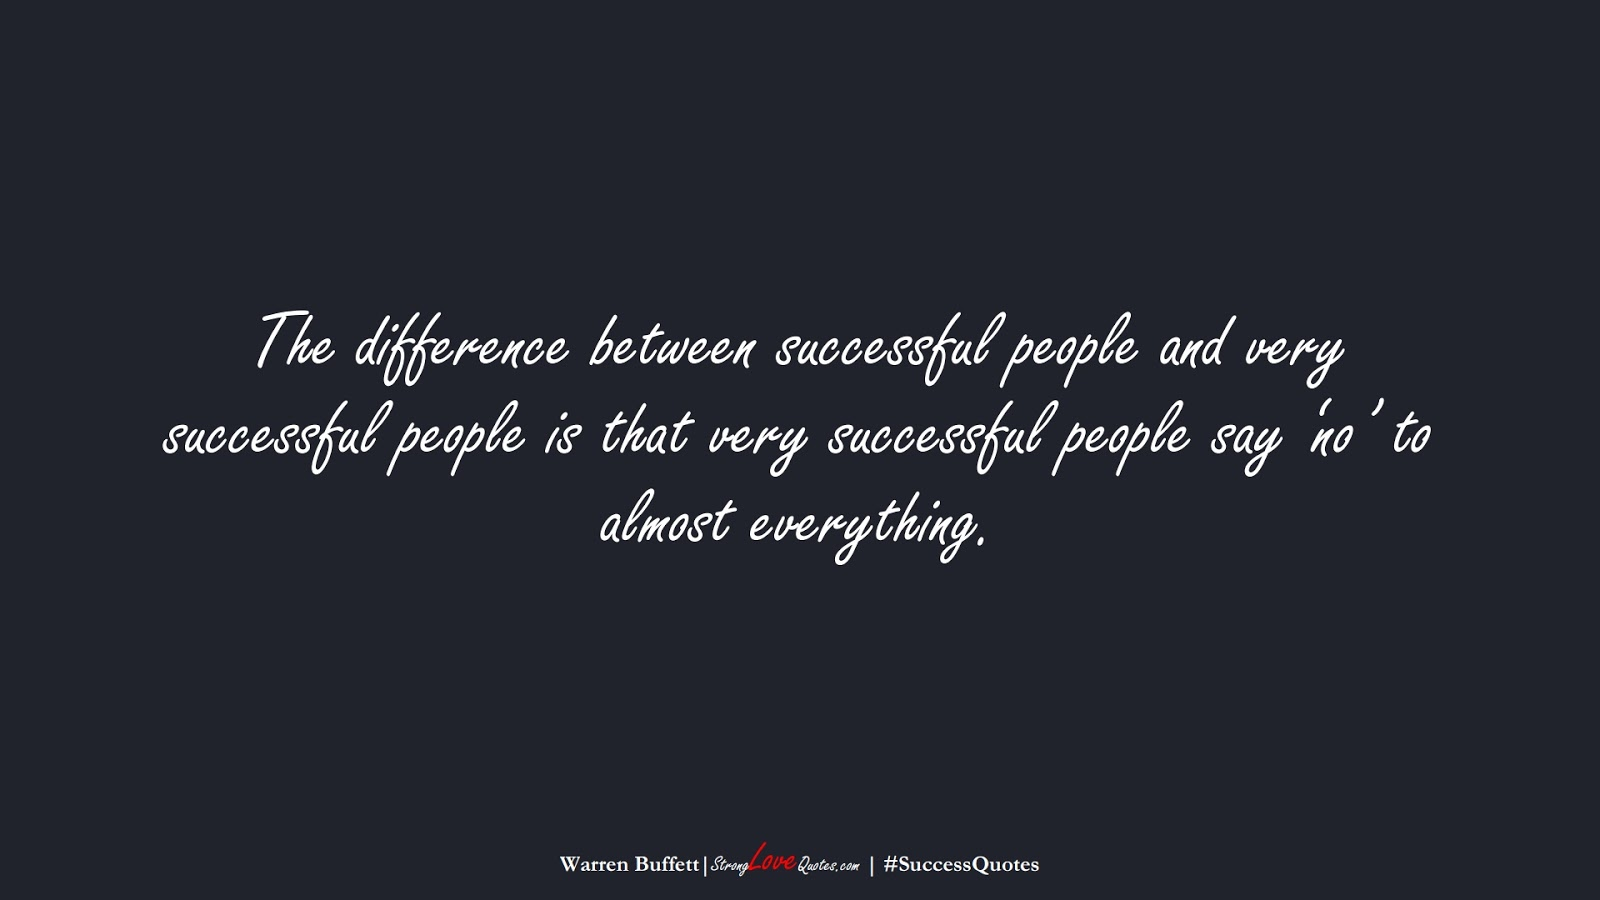 The difference between successful people and very successful people is that very successful people say 'no' to almost everything. (Warren Buffett);  #SuccessQuotes